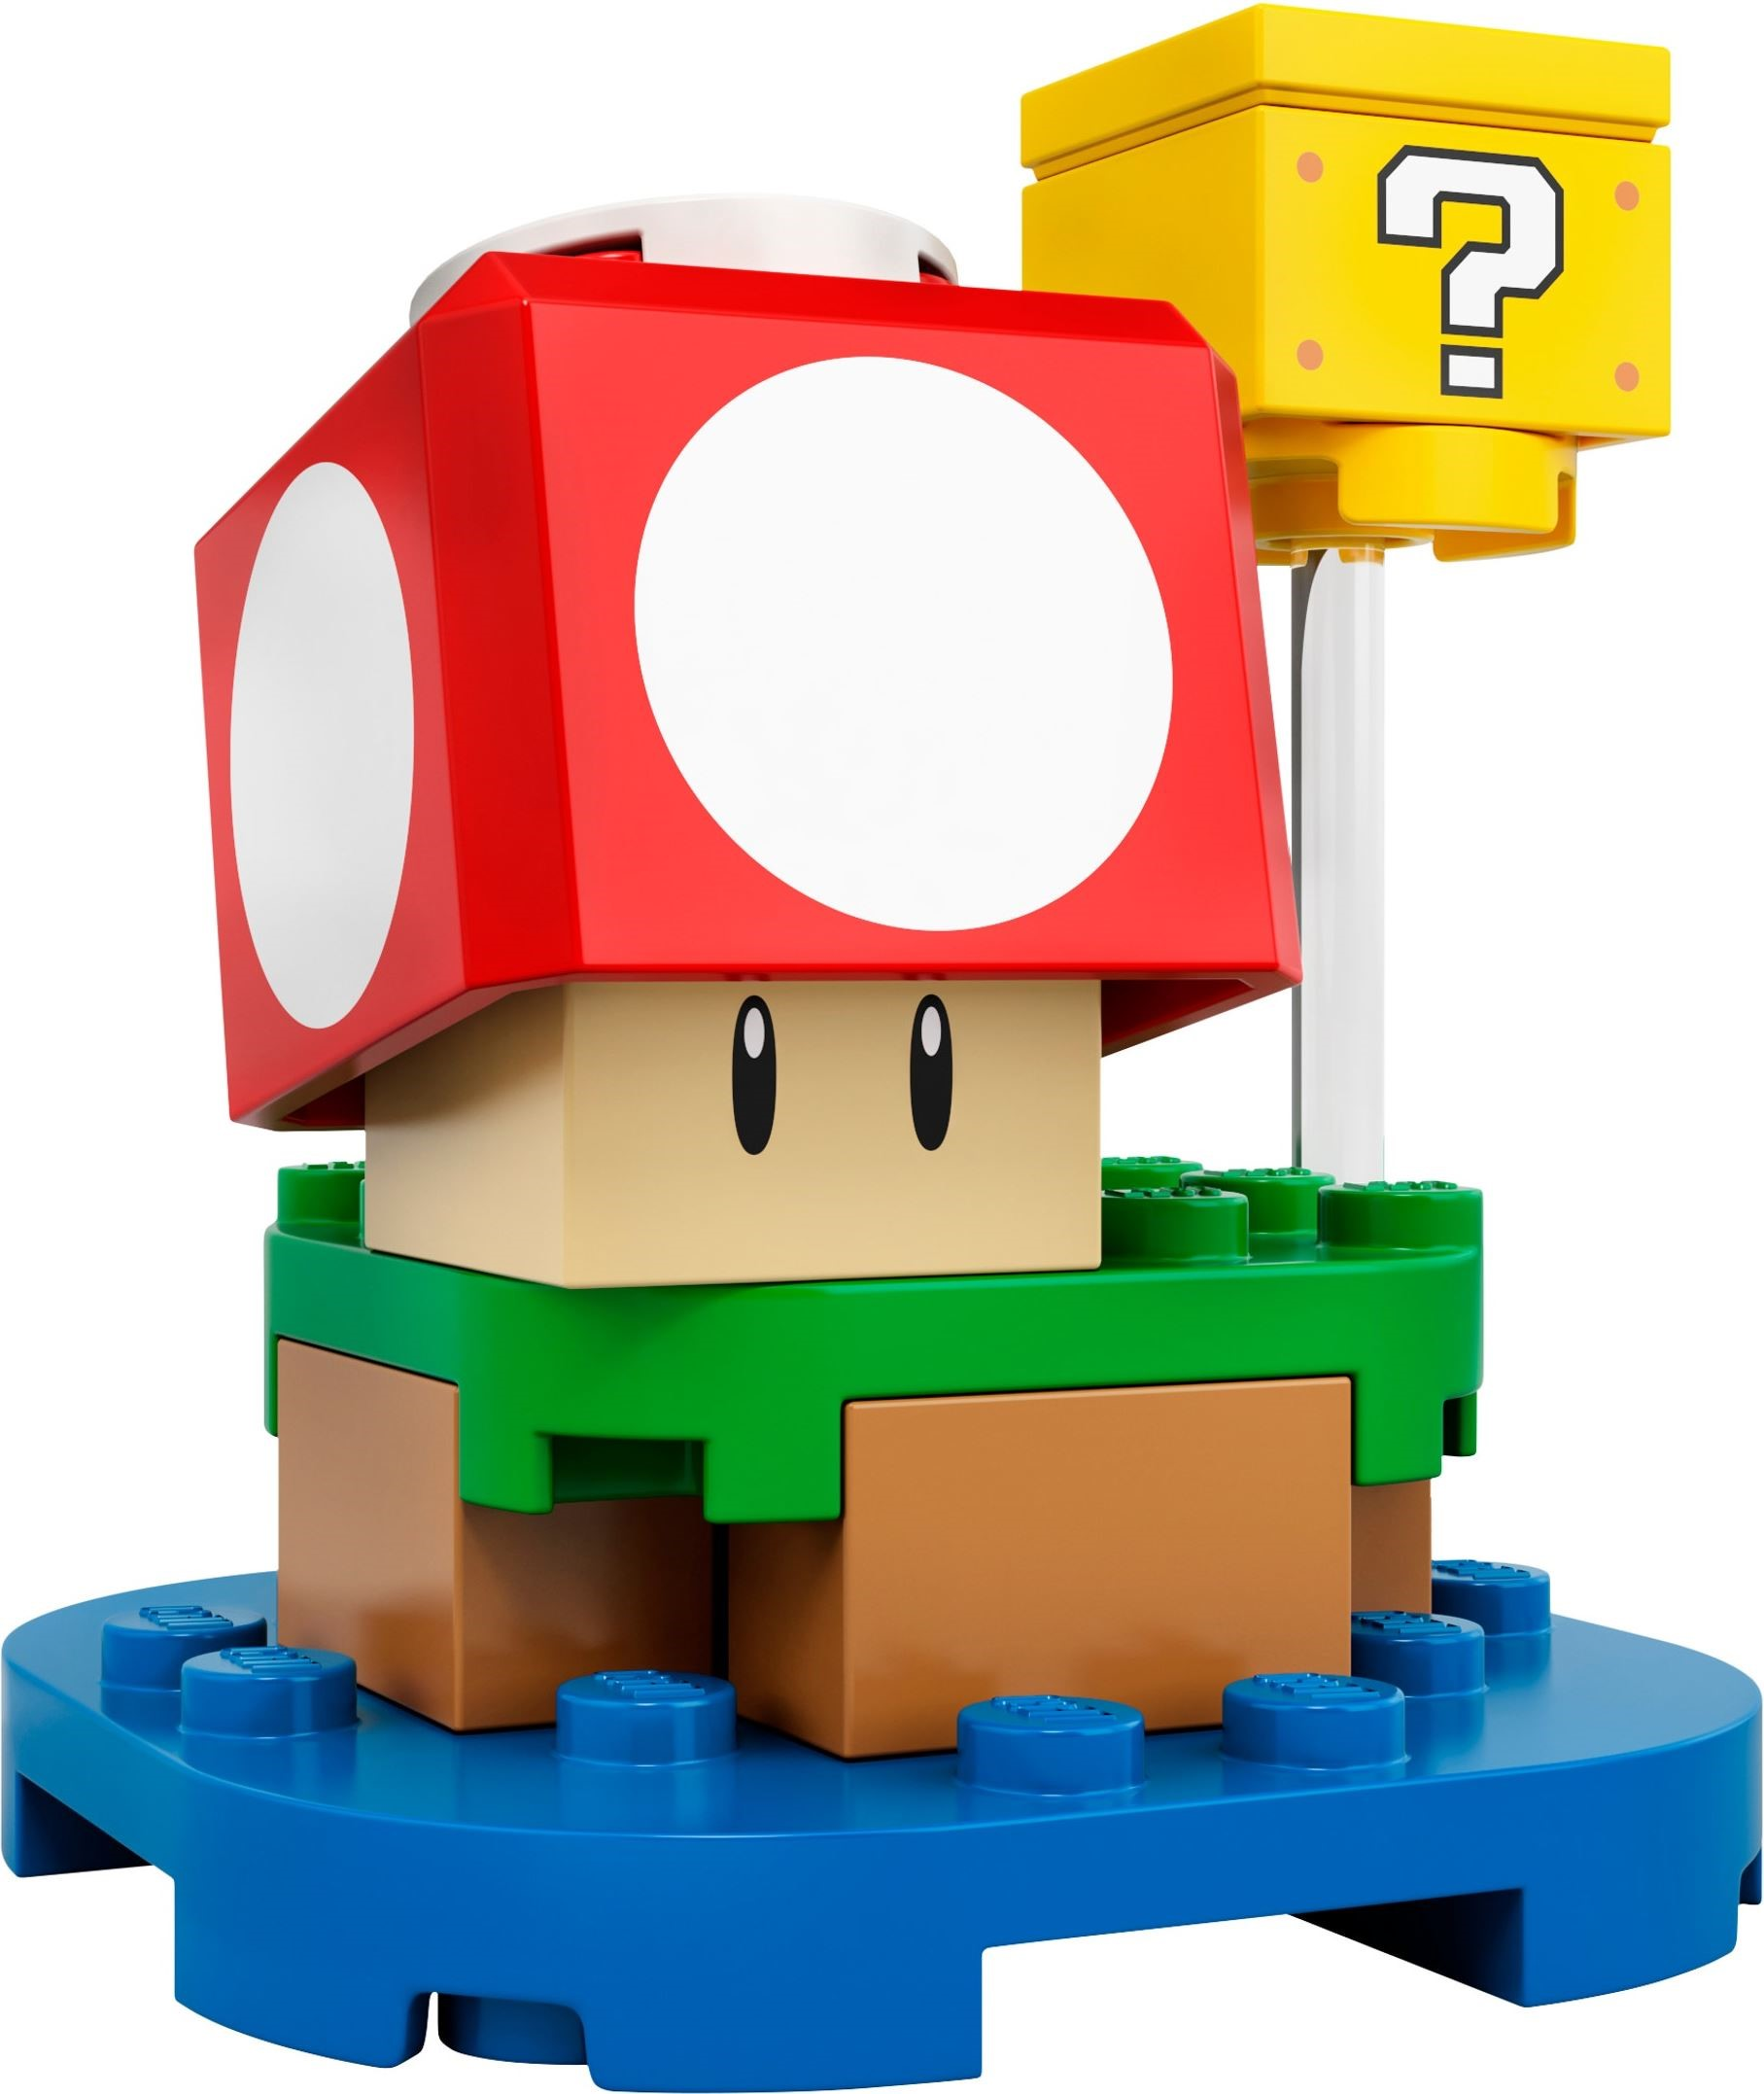 Pre Order Super Mario At Iwoot And Receive A Free Gift Brickset